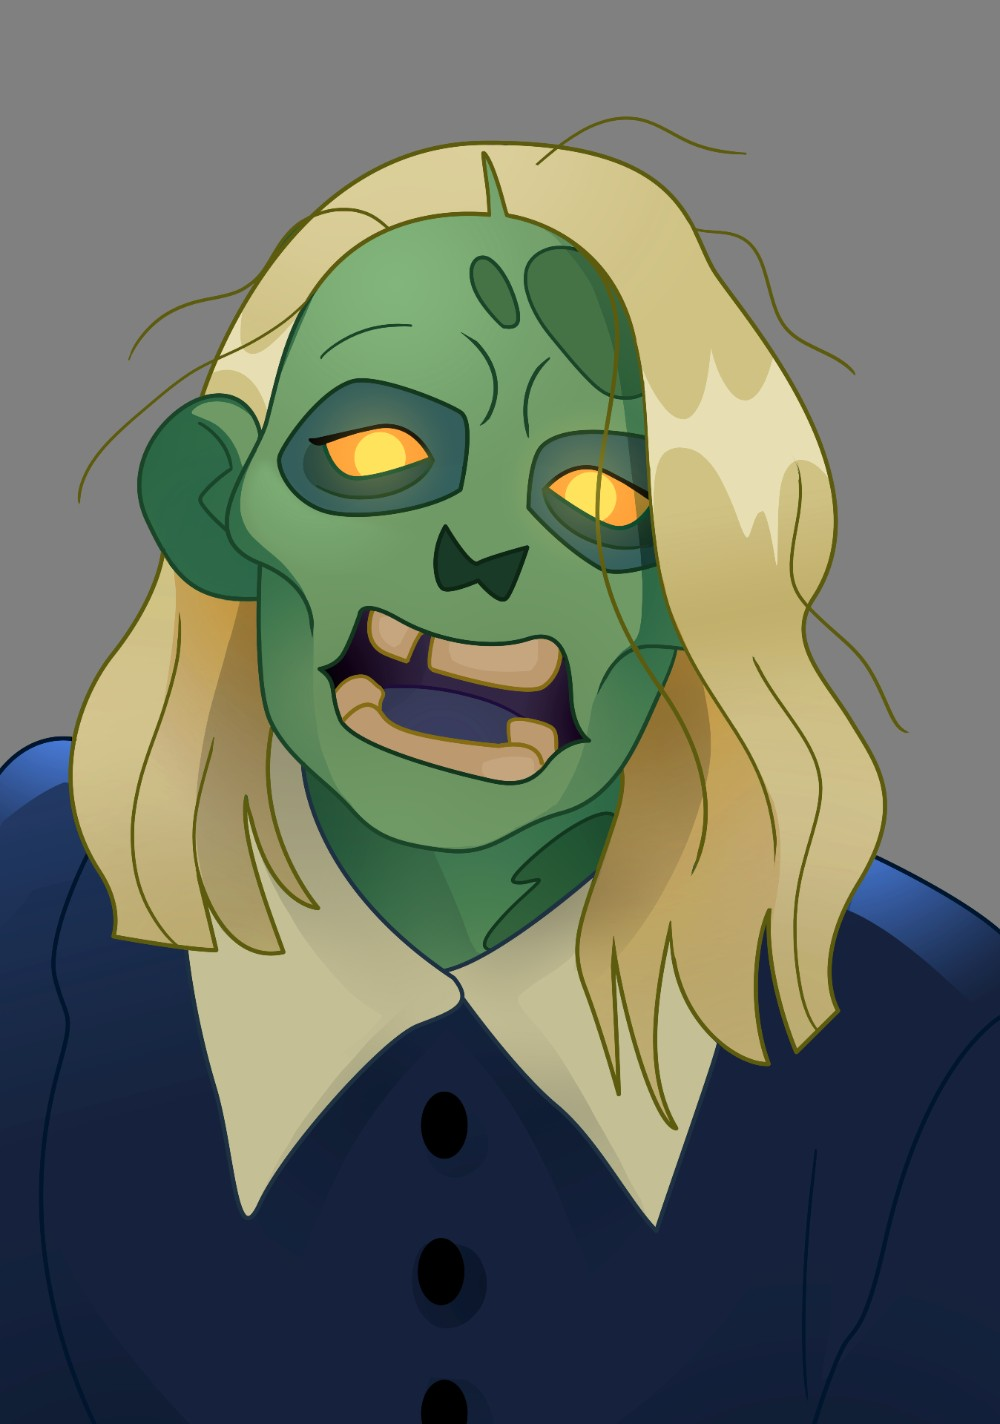 Holly Willoughby drawn as a zombie - Scottish News